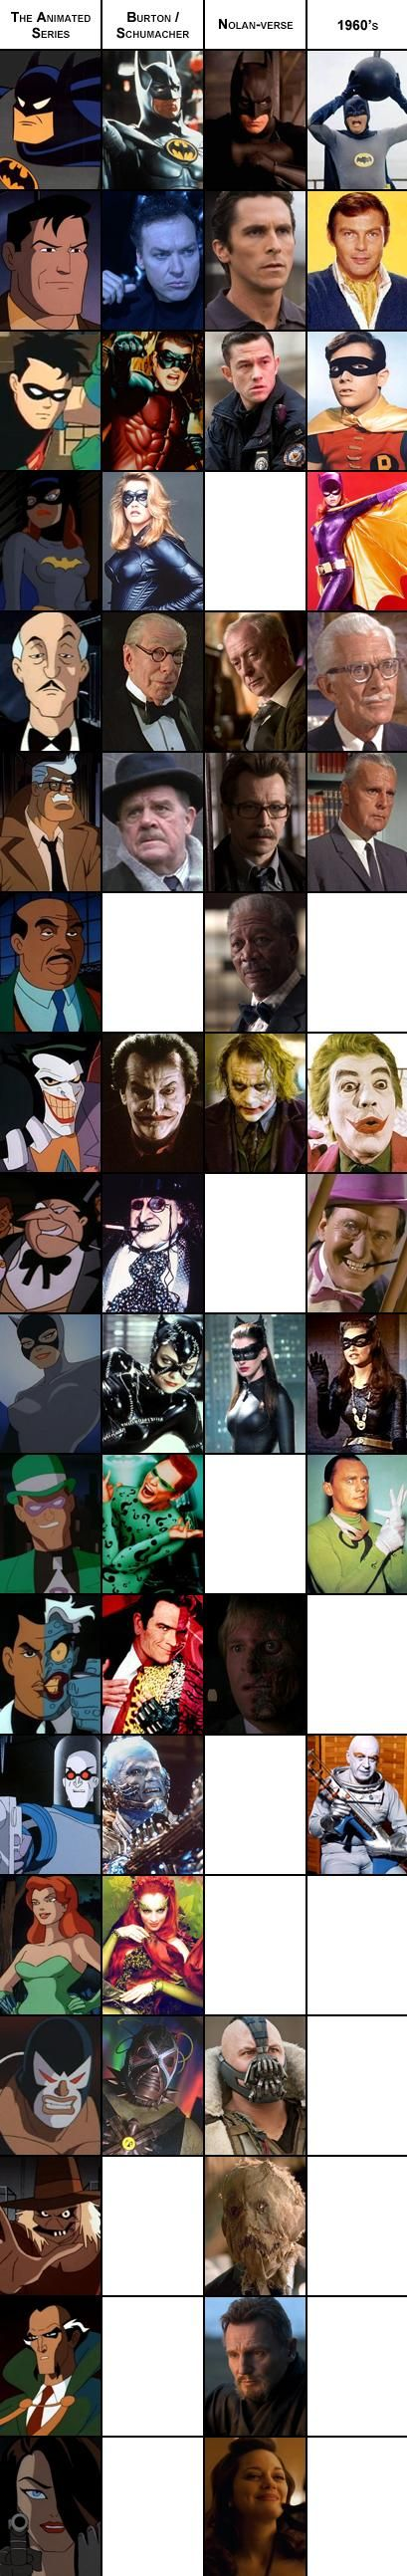 Visualized: Nolan-verse Batman cast vs Animated Series vs Other Film.